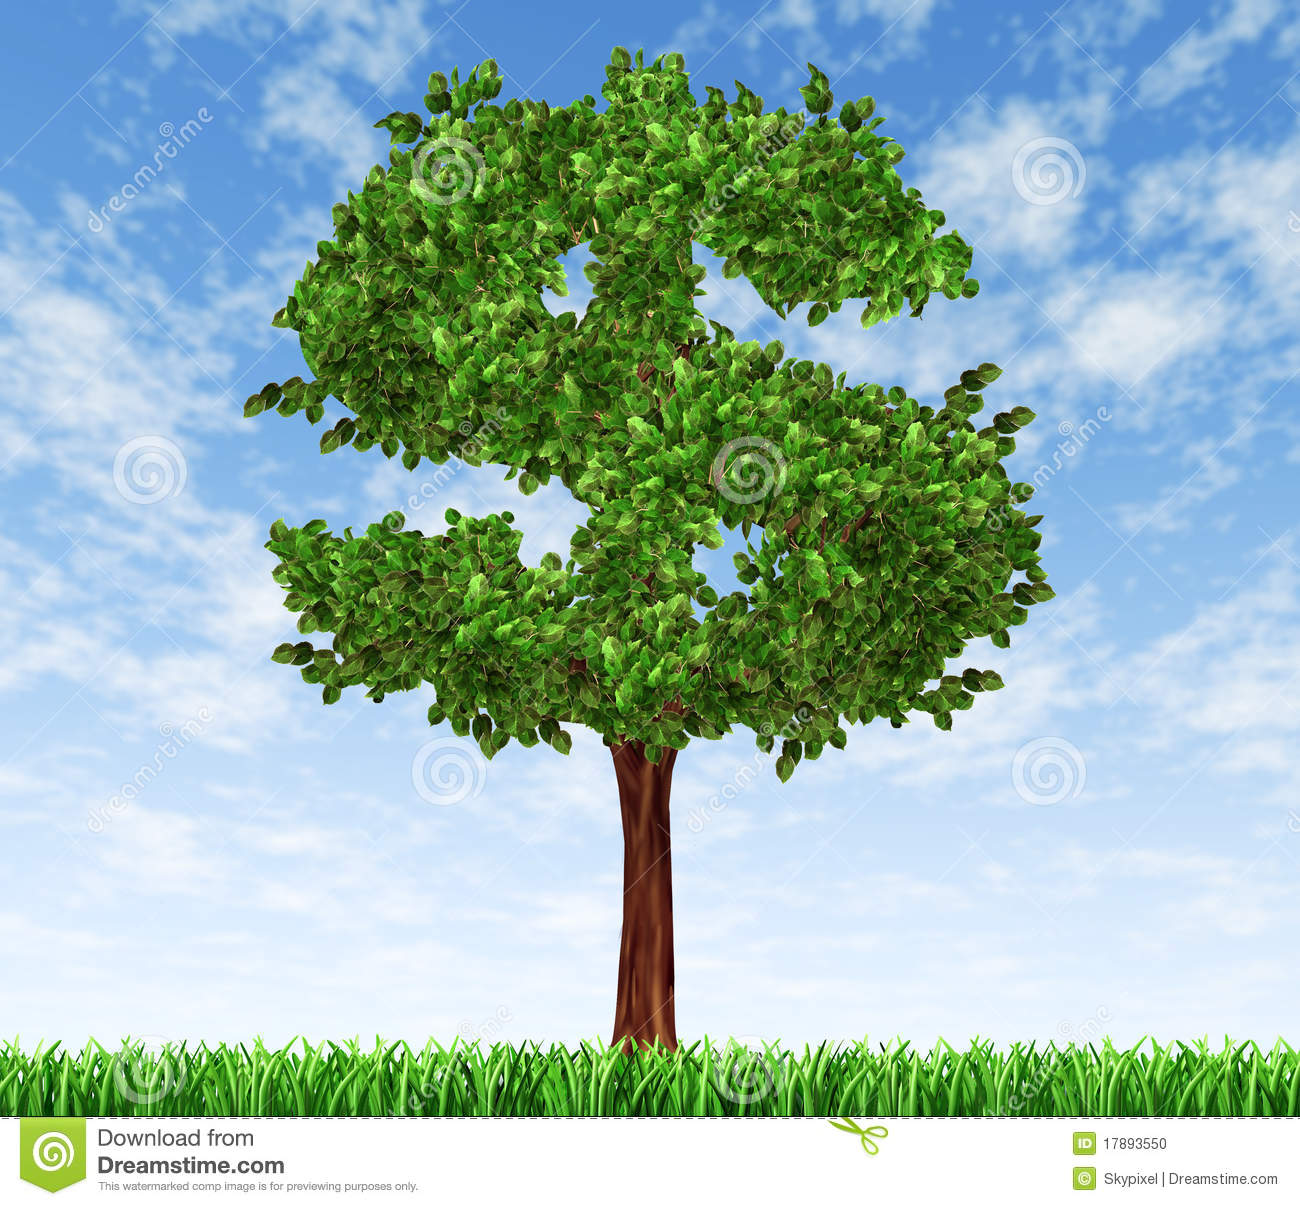 Finance Tree: Money Tree With Sky And Grass Investment Growth Co Stock